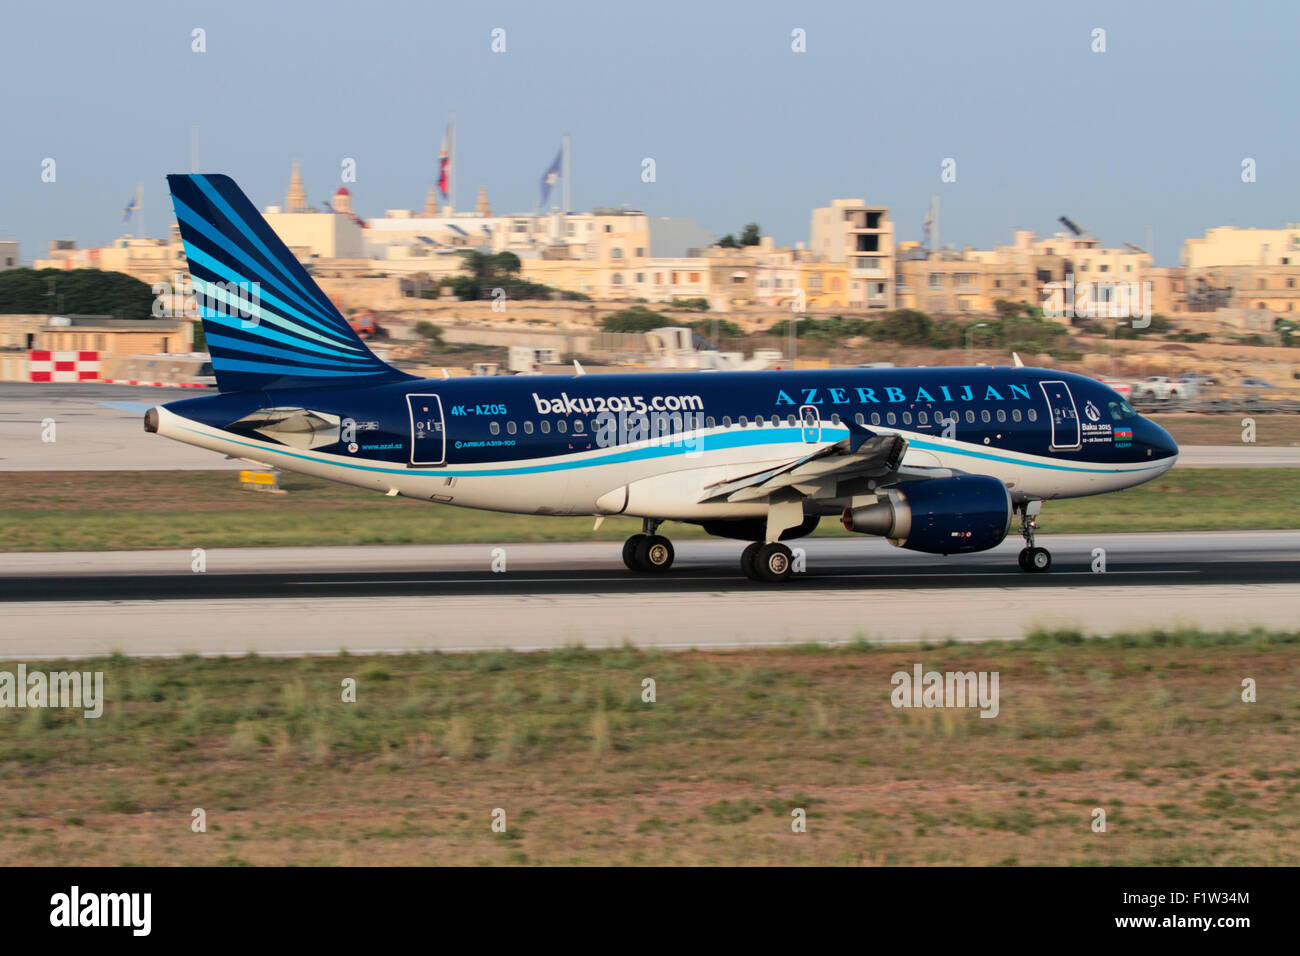 Civil aviation. Azerbaijan Airlines Airbus A319 departing from Malta - Stock Image